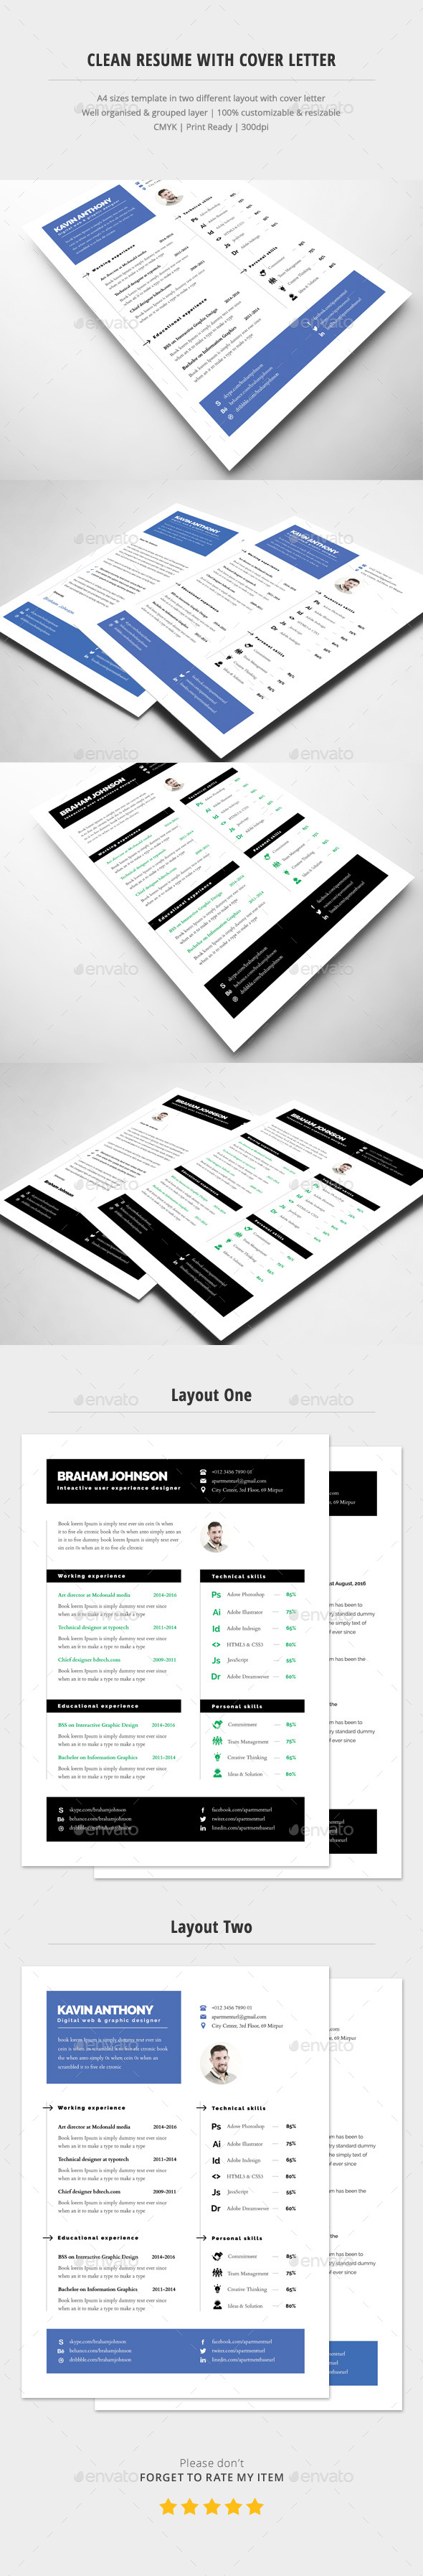 Clean Resume Template With Cover Letter - Resumes Stationery